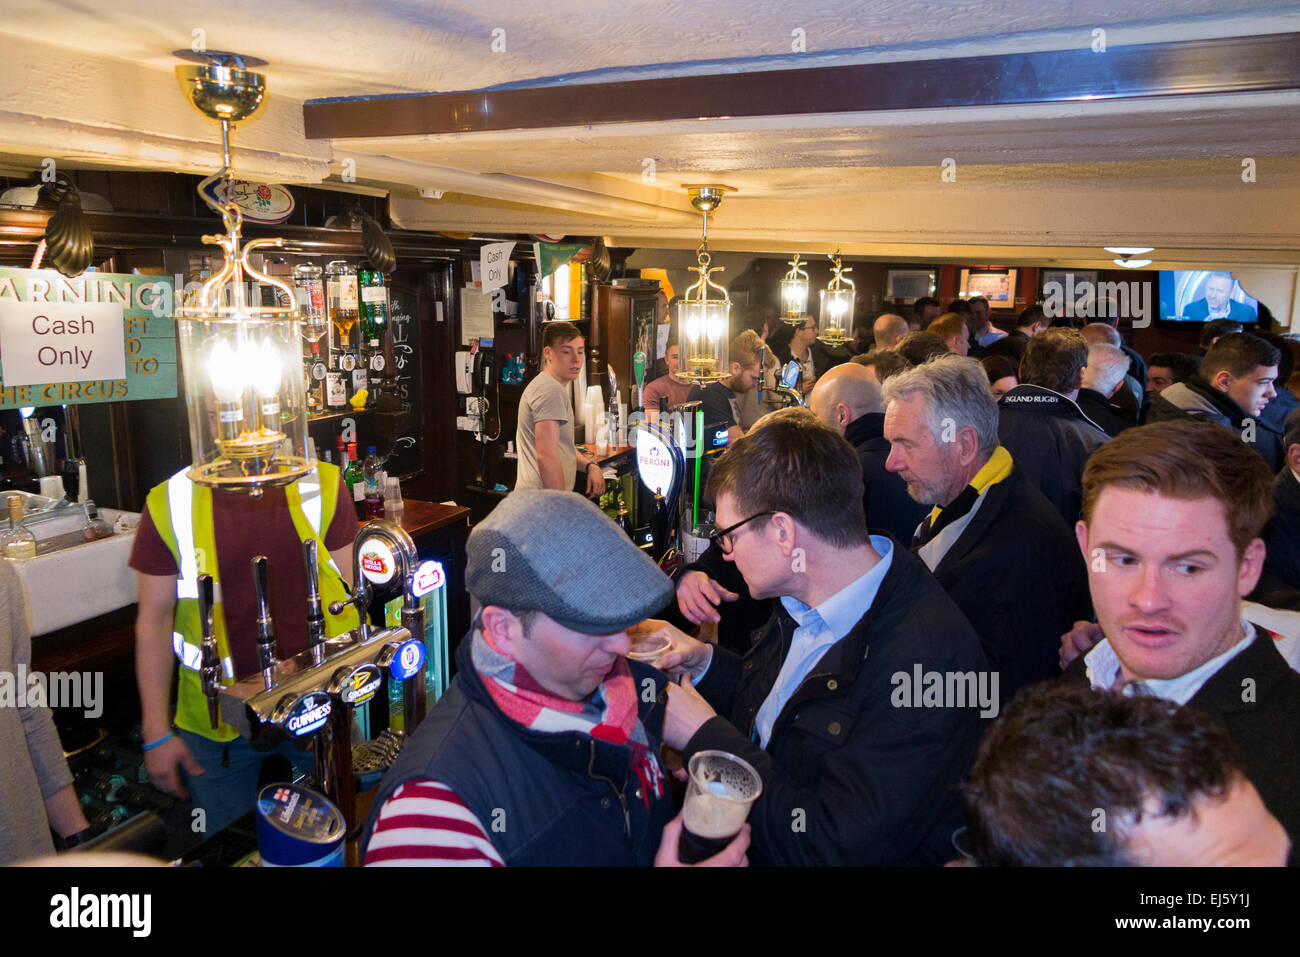 Rugby fan crowd / fans at crowded busy bar - The Barmy Arms pub / public house. Twickenham UK; popular on match Stock Photo